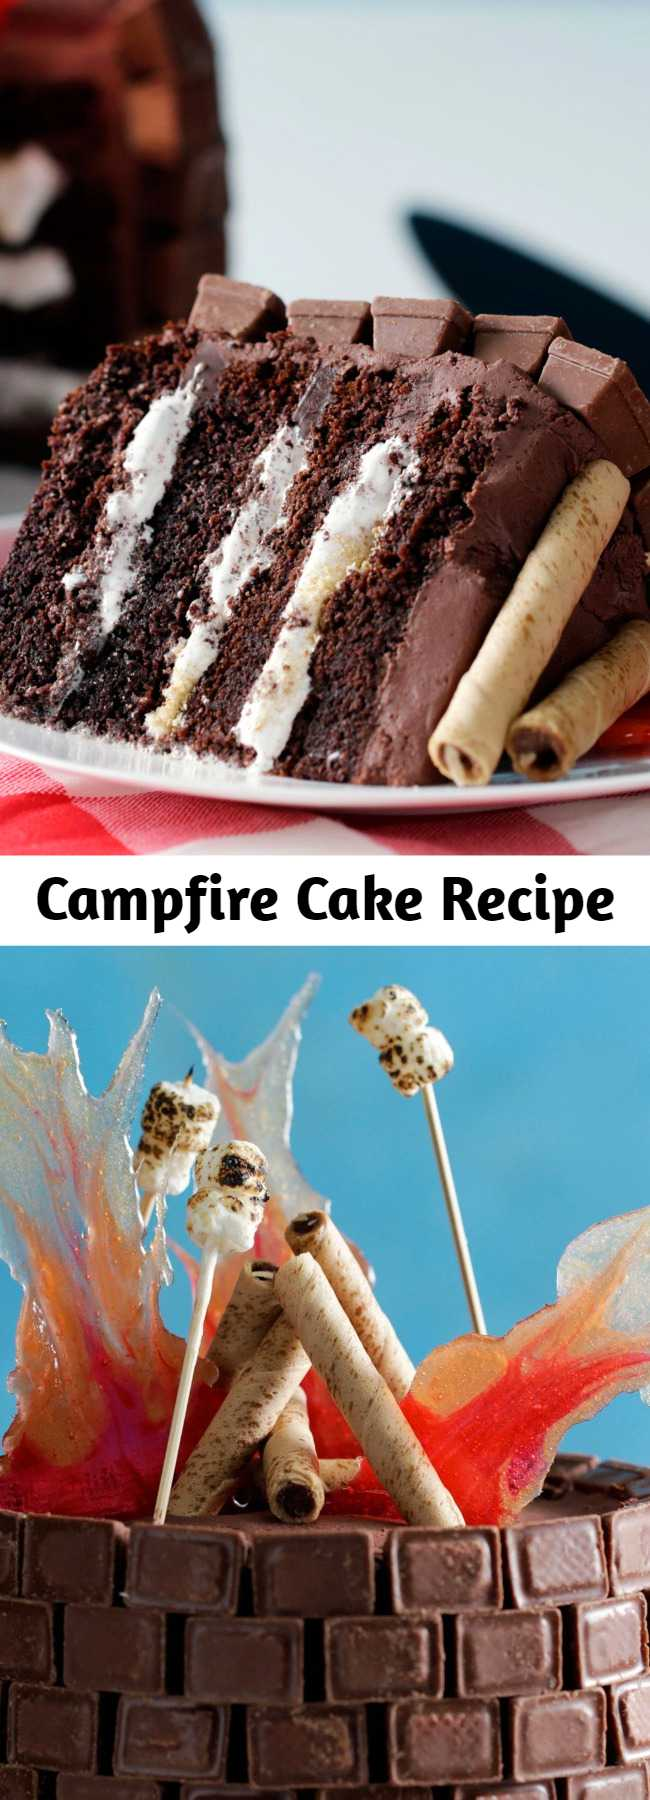 Campfire Cake Recipe - Here's the perfect birthday cake idea for a backyard party or camping party or for those outdoorsy types. This Campfire Cake recipe is sure to light up the birthday camper as well as the other party guests.